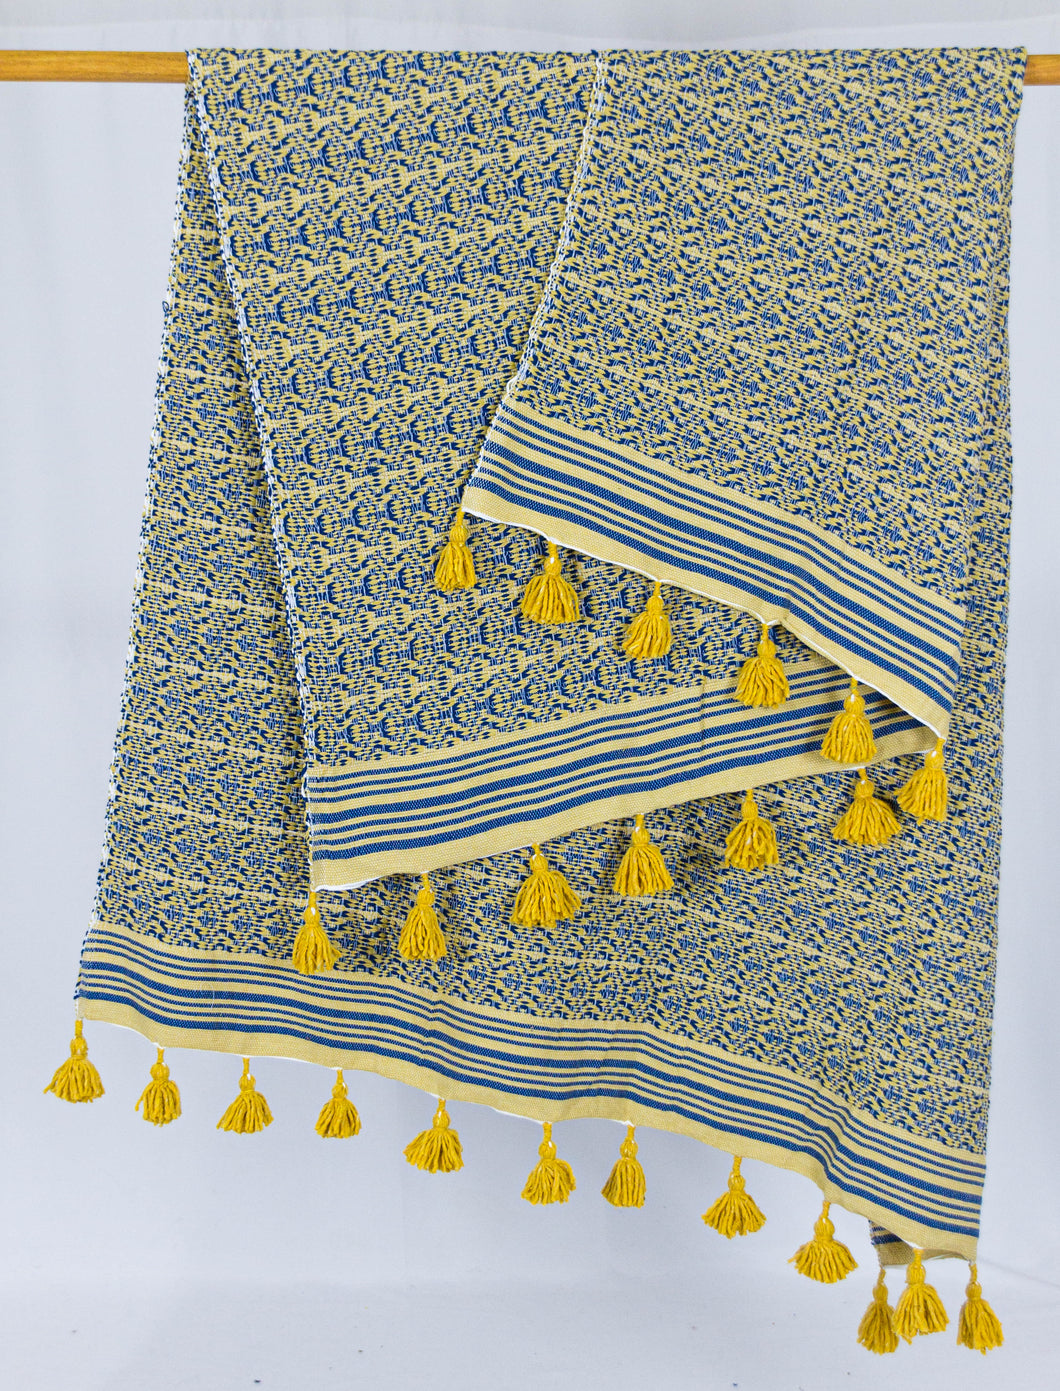 Wool Design Blanket: Yellow with Blue Design and Mustard Yellow Pom Poms